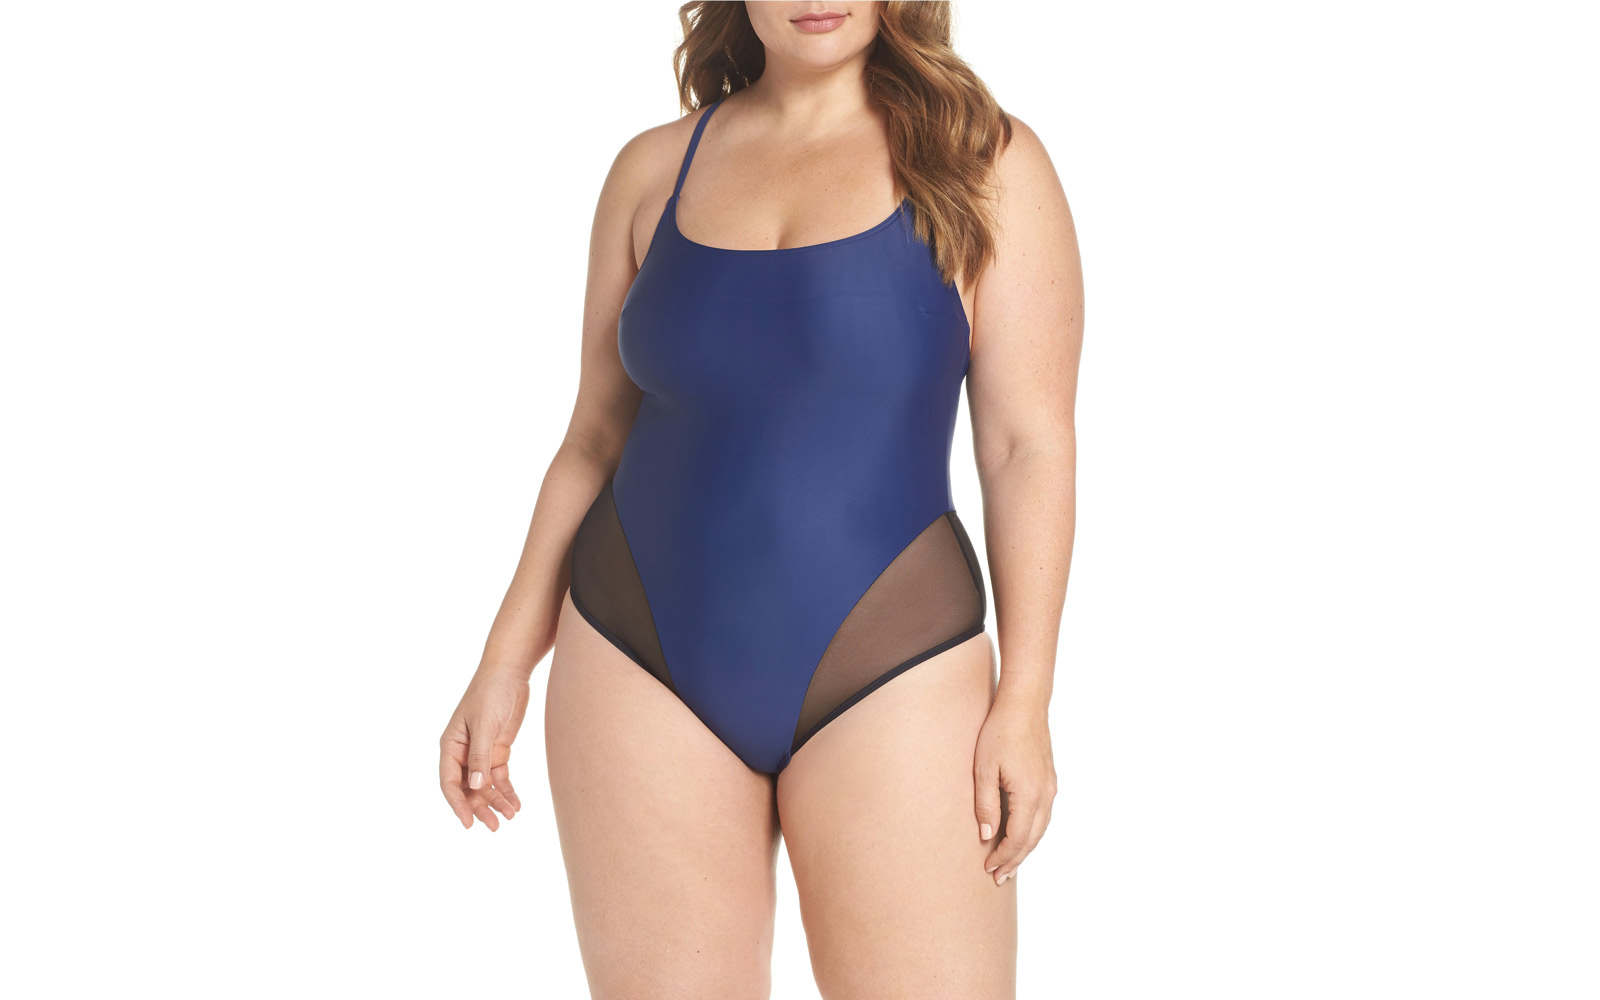 Chromat swimsuit